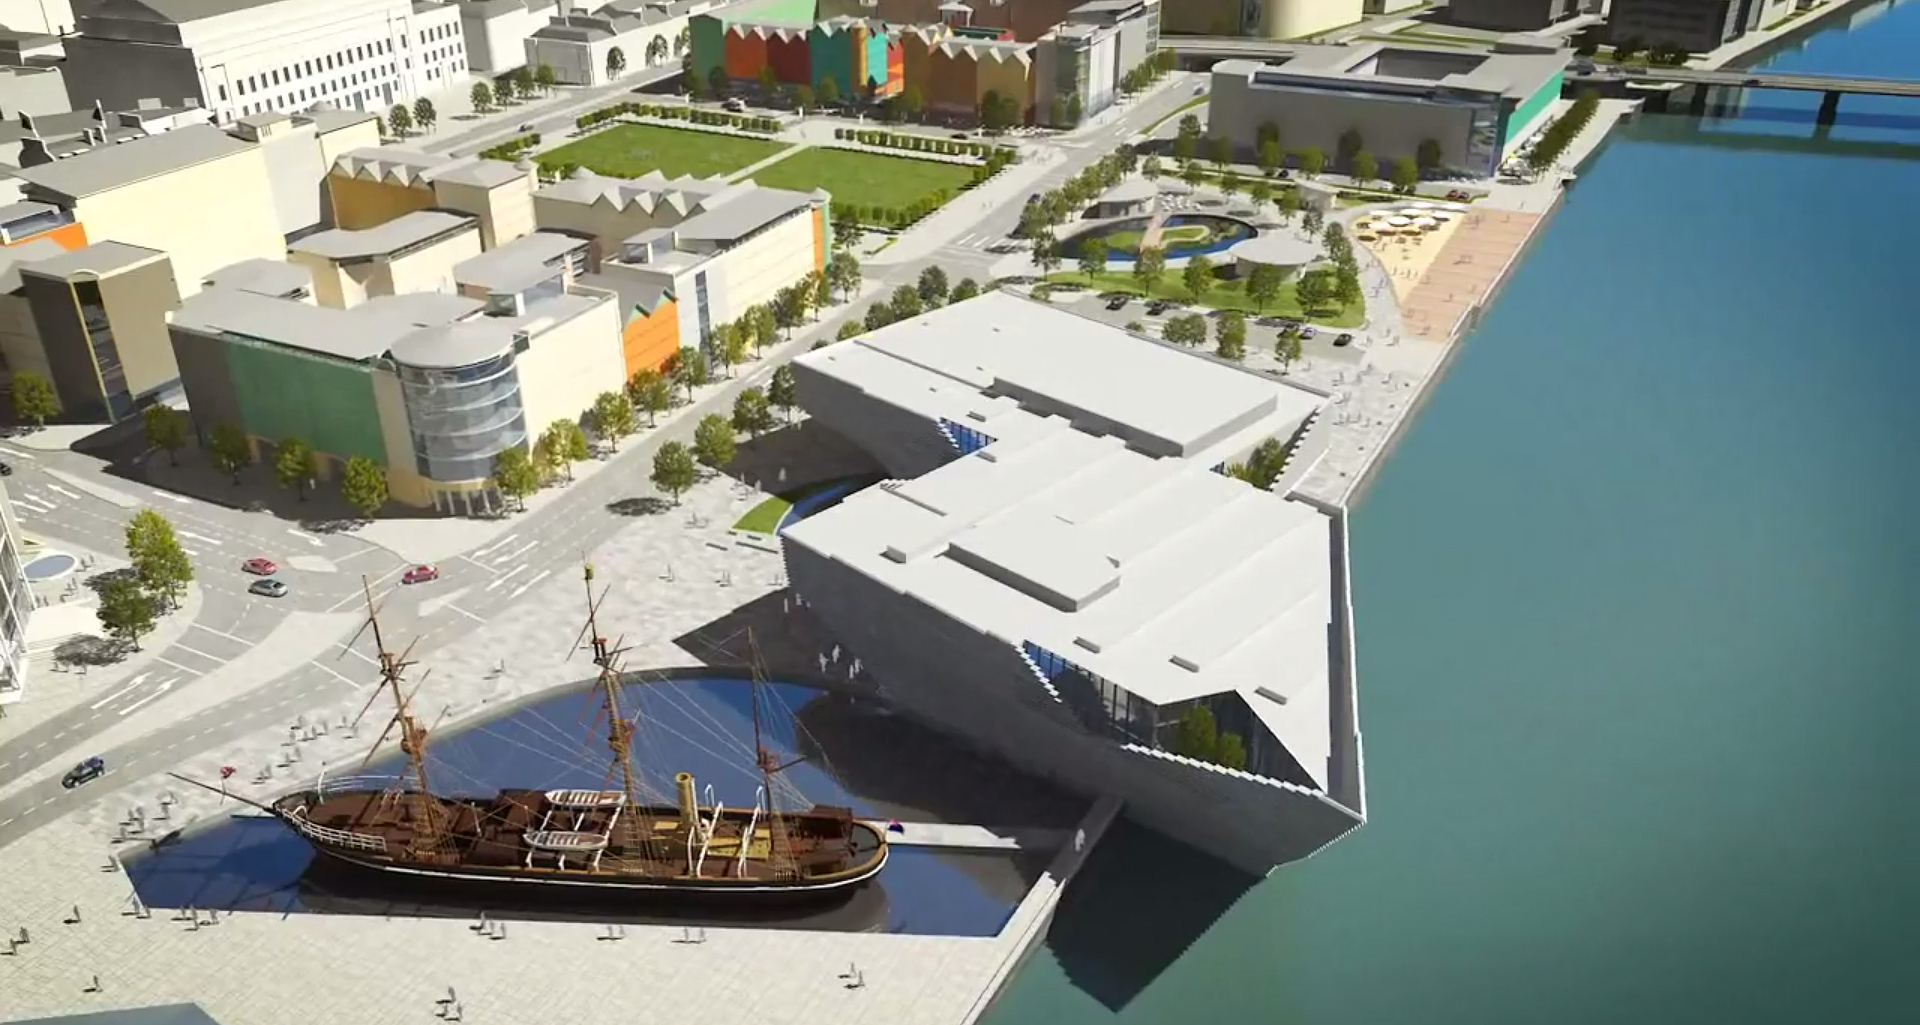 The hospitality sector is being targeted in the next round of Dundee Waterfront investment roadshows.